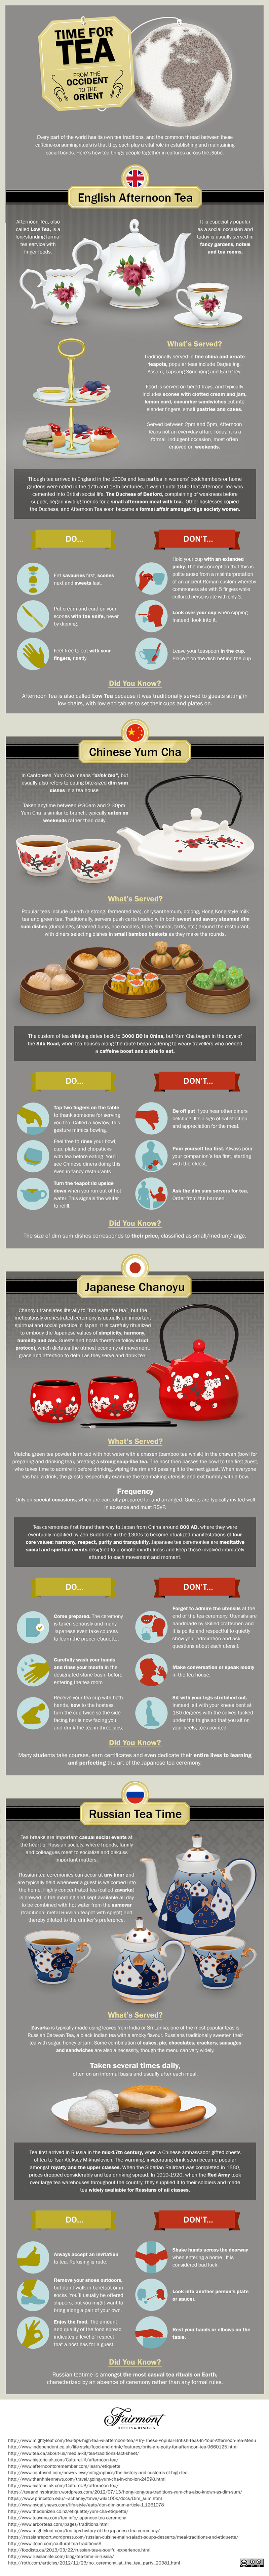 Time for Tea The Different Tea Traditions From Around the World